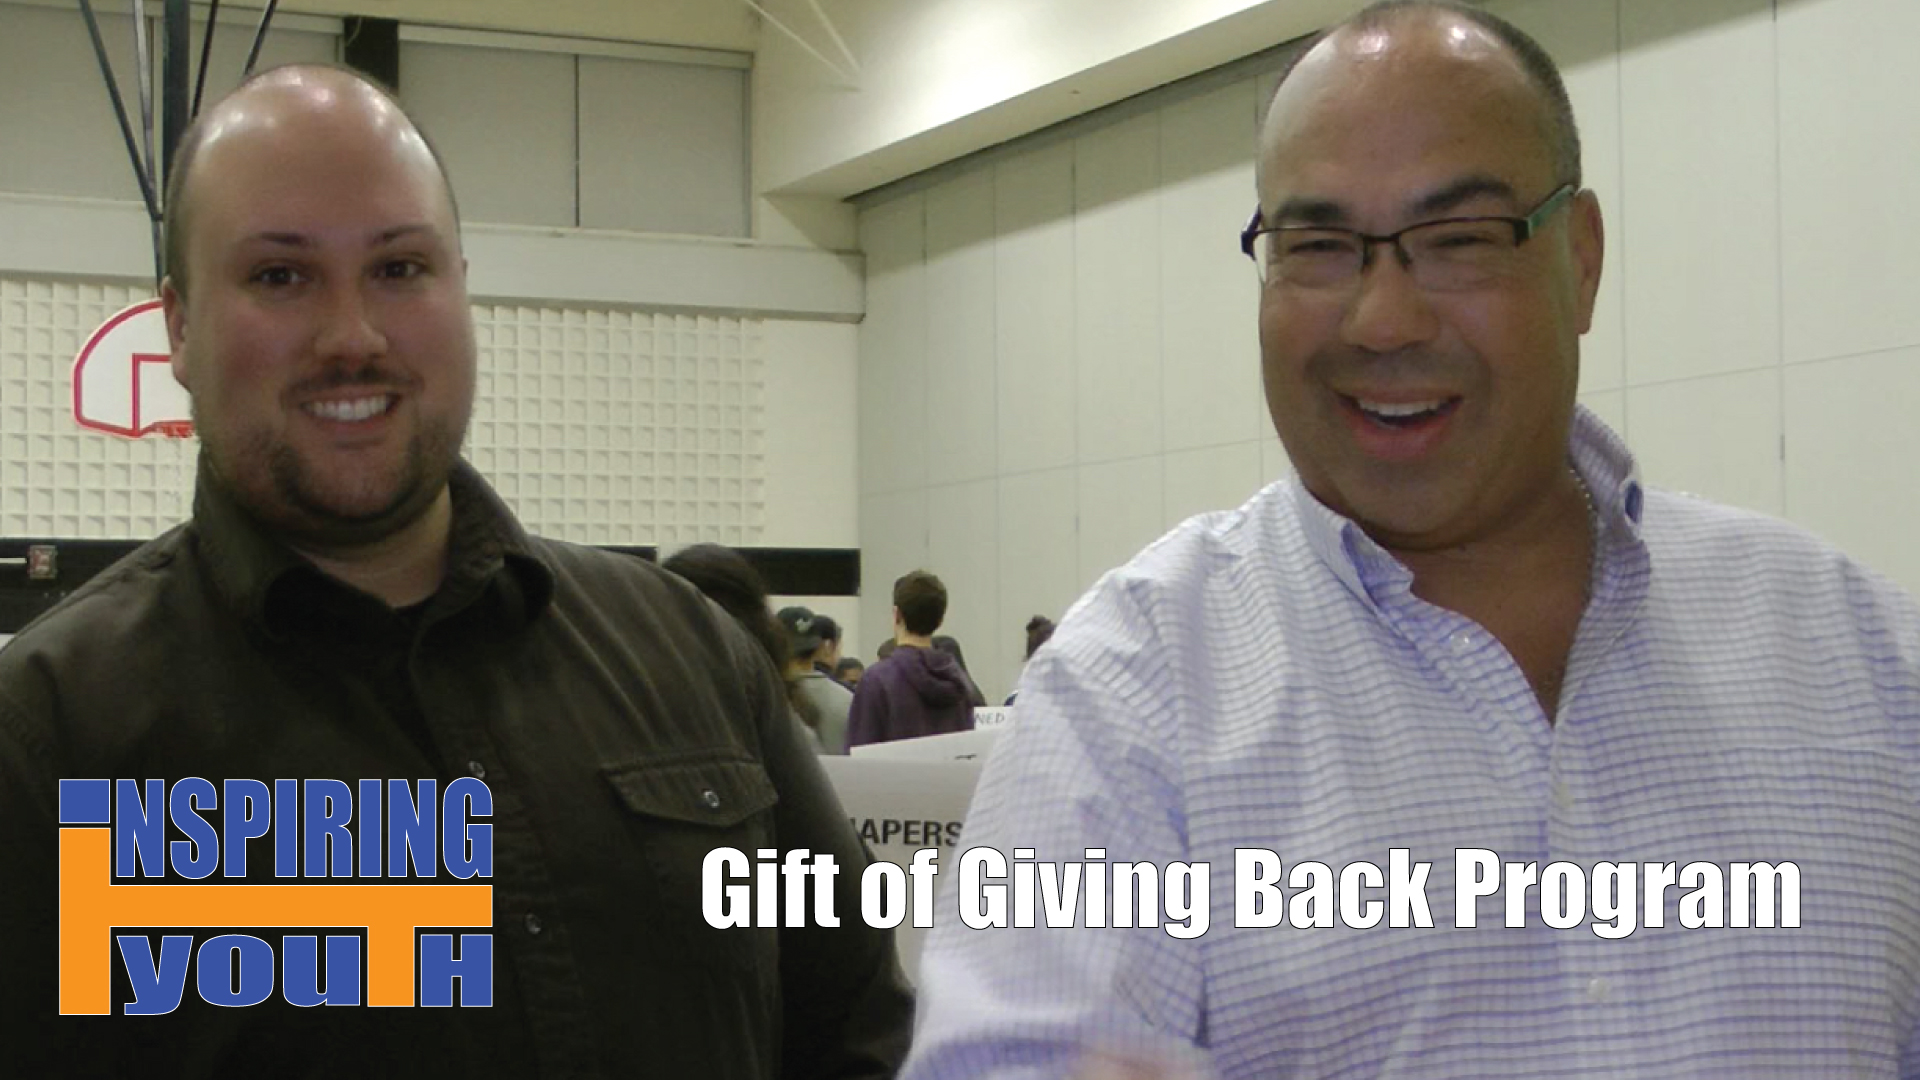 Gift-of-Giving-back-Inspiring-Youth-Graphic